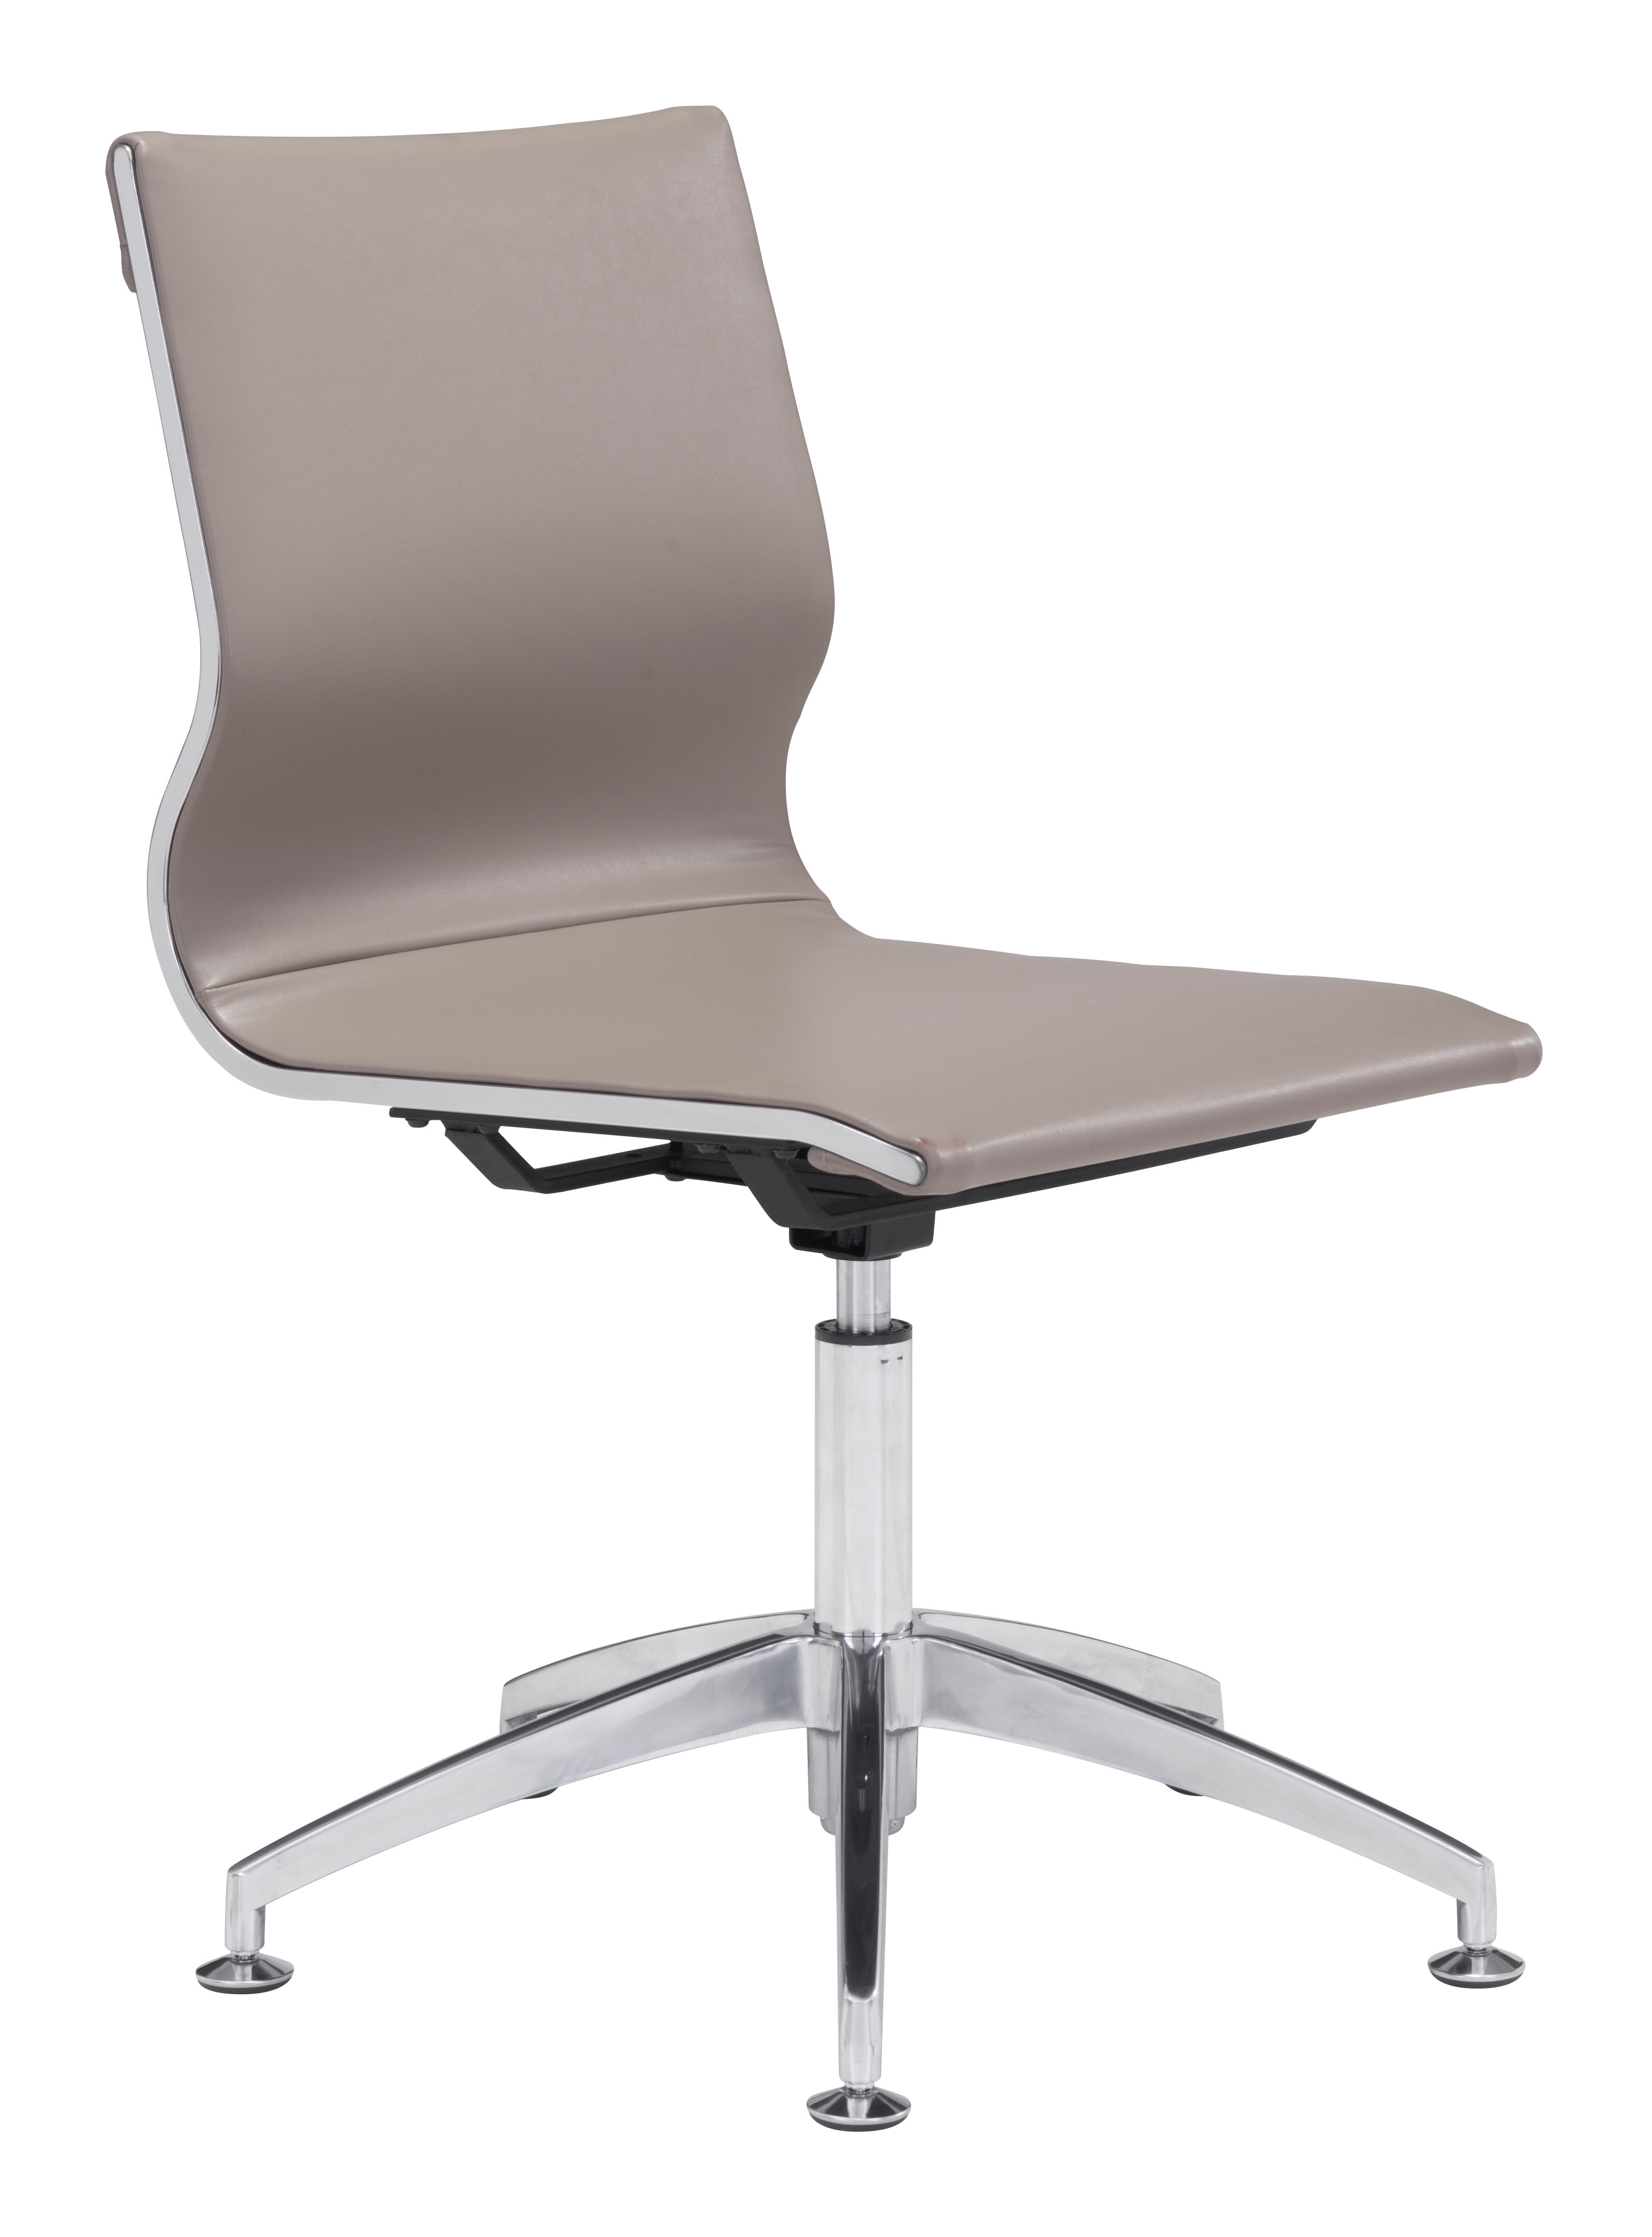 Zuo Glider Conference Chair Modern Conference and Office Chair By Zuo